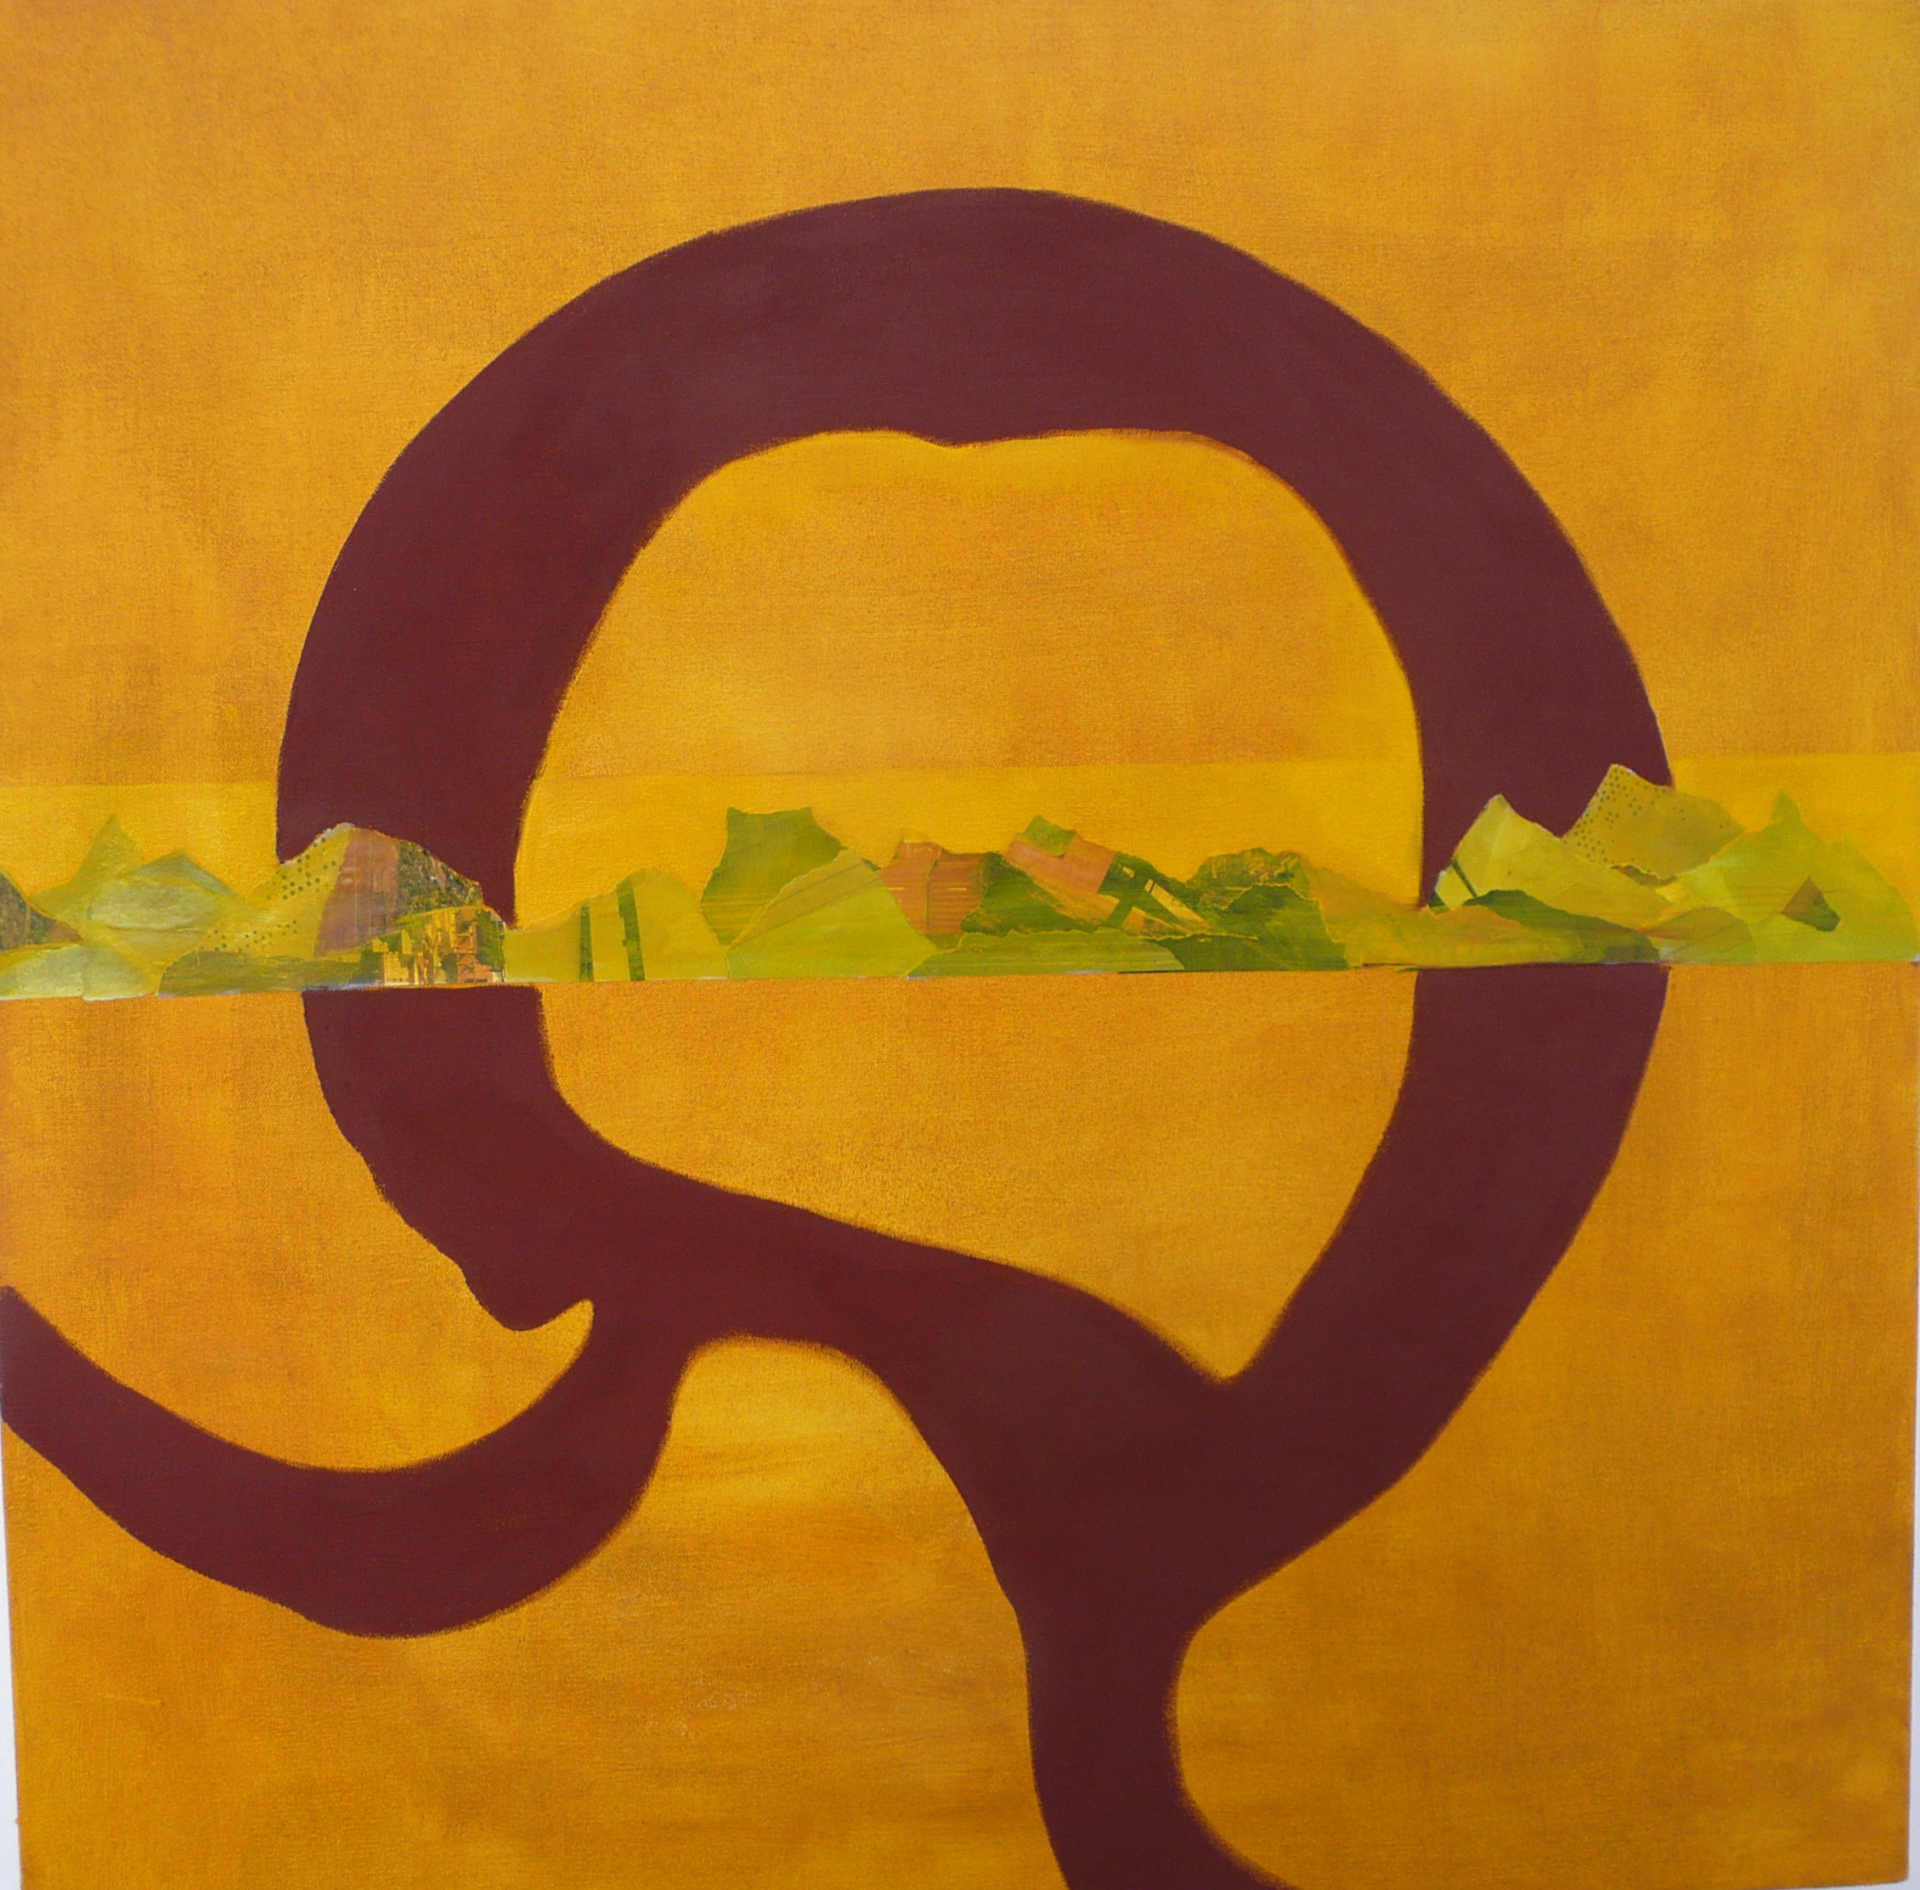 Rumbo ,2011, in a private collection